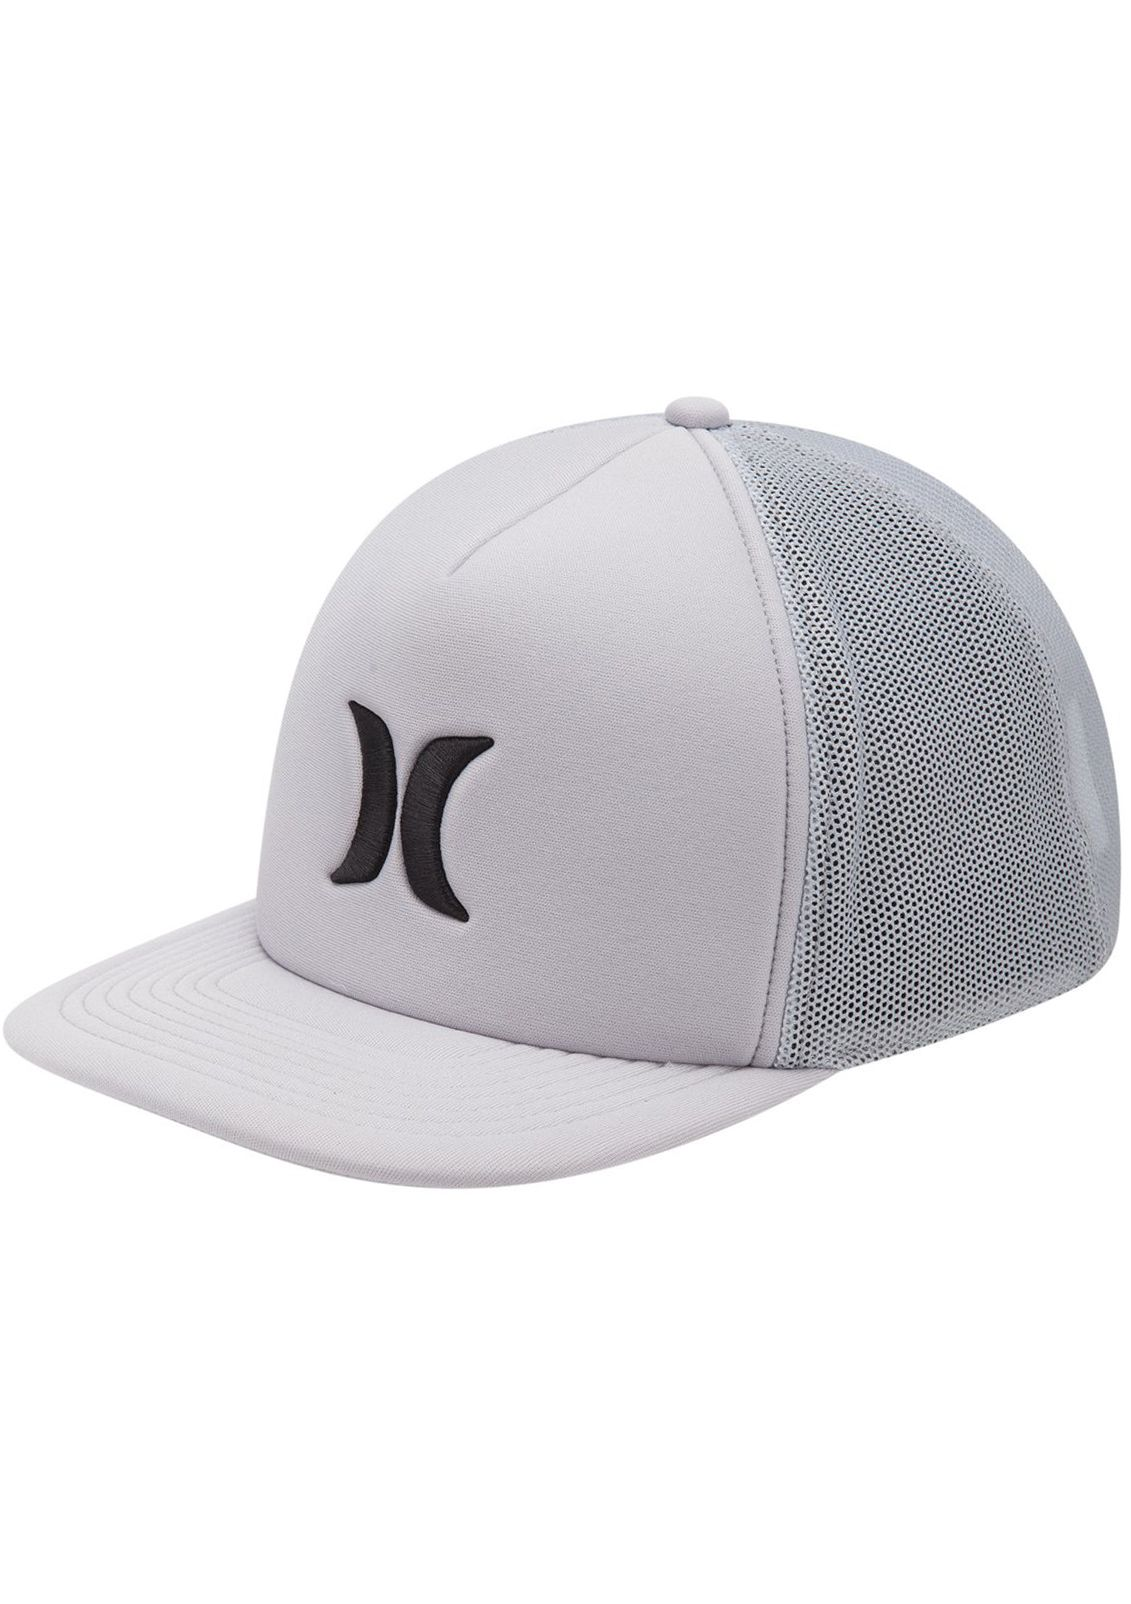 Shop Blocked 3.0 Hat by Hurley ( MHA0007180) on Jack s Surfboards ... e26db35cb4e